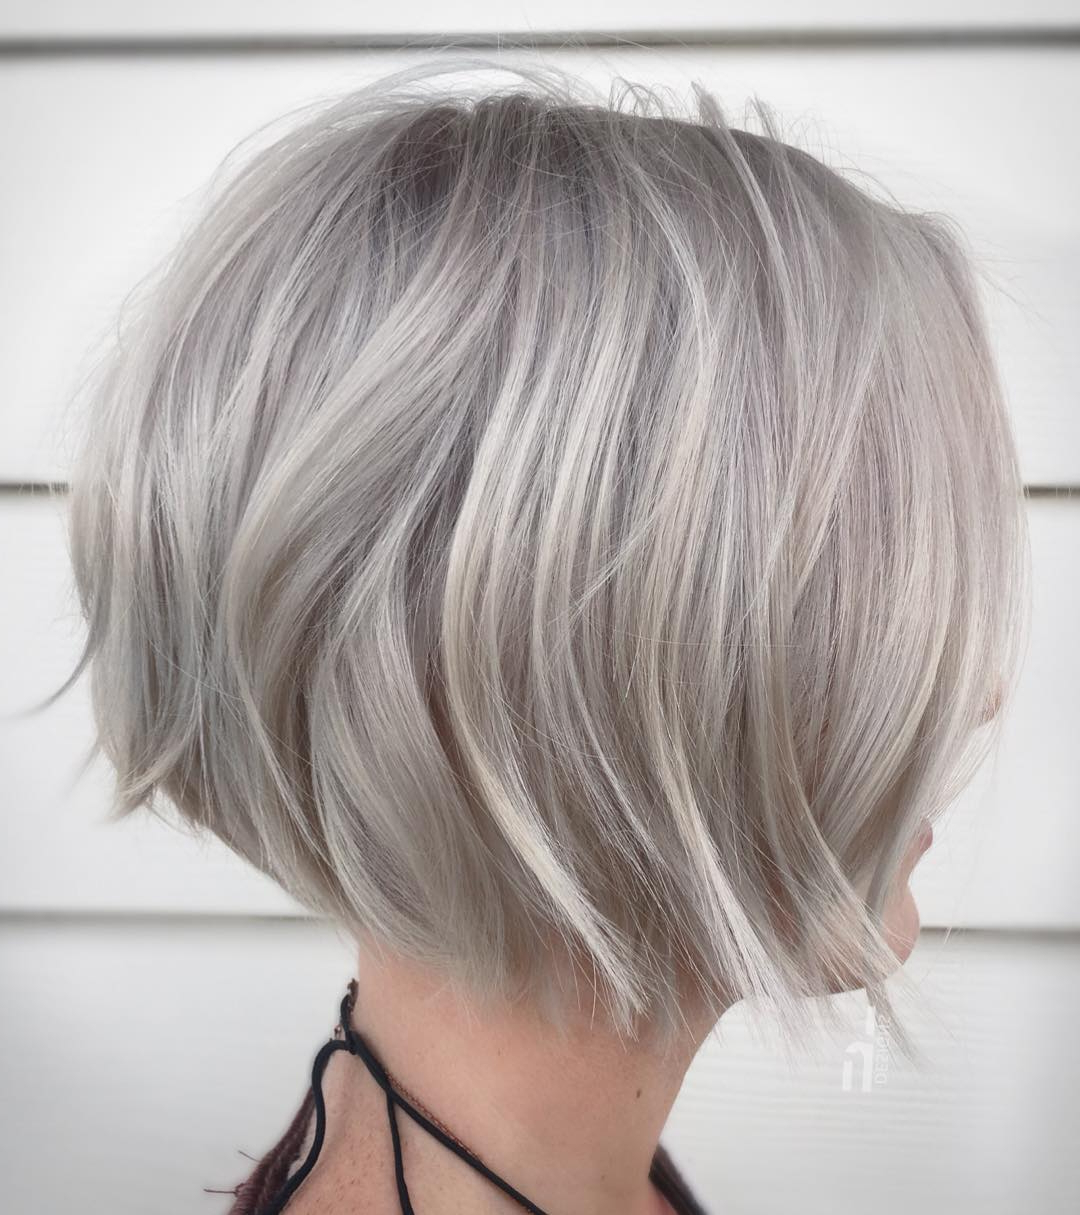 10 Stylish Medium Bob Haircuts For Women – Easy Care Chic Bob Hair 2019 Throughout Gray Bob Hairstyles With Delicate Layers (View 3 of 20)